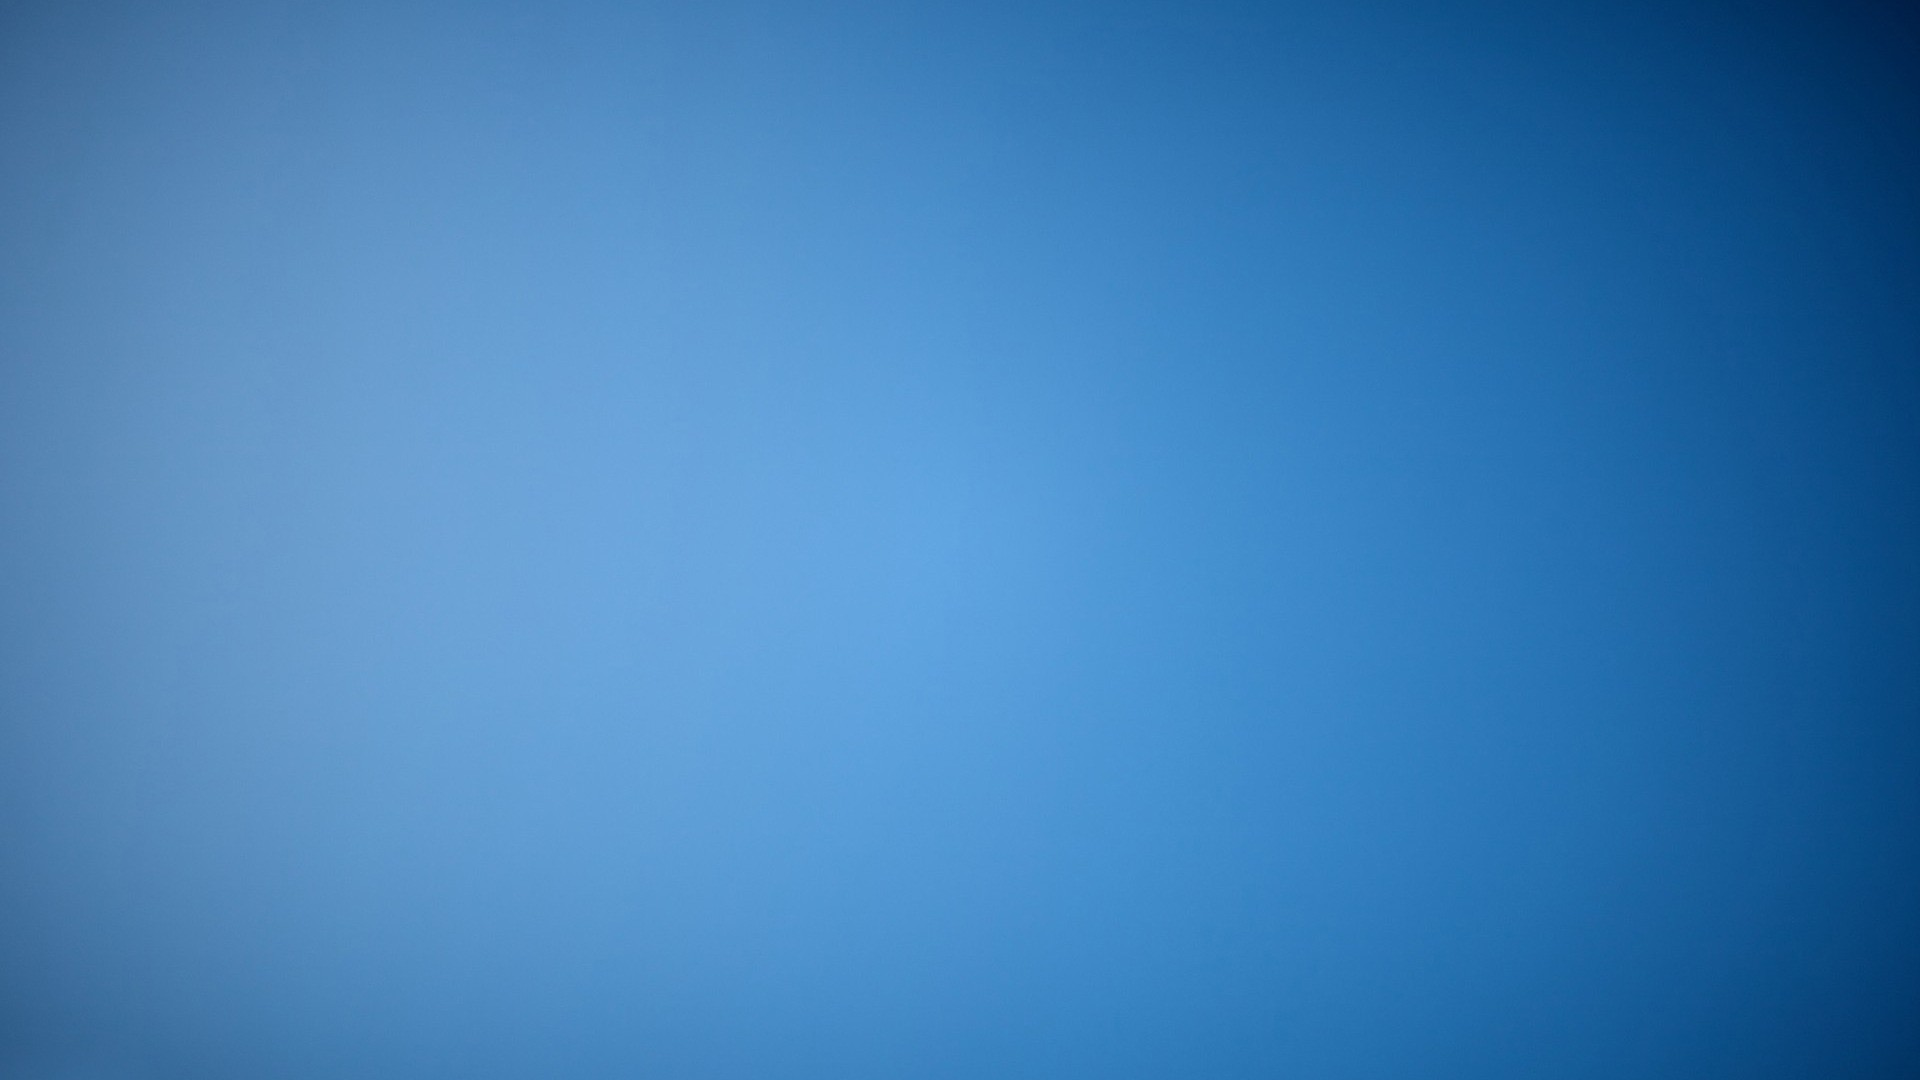 Pastel Blue background ·① Download free High Resolution ...